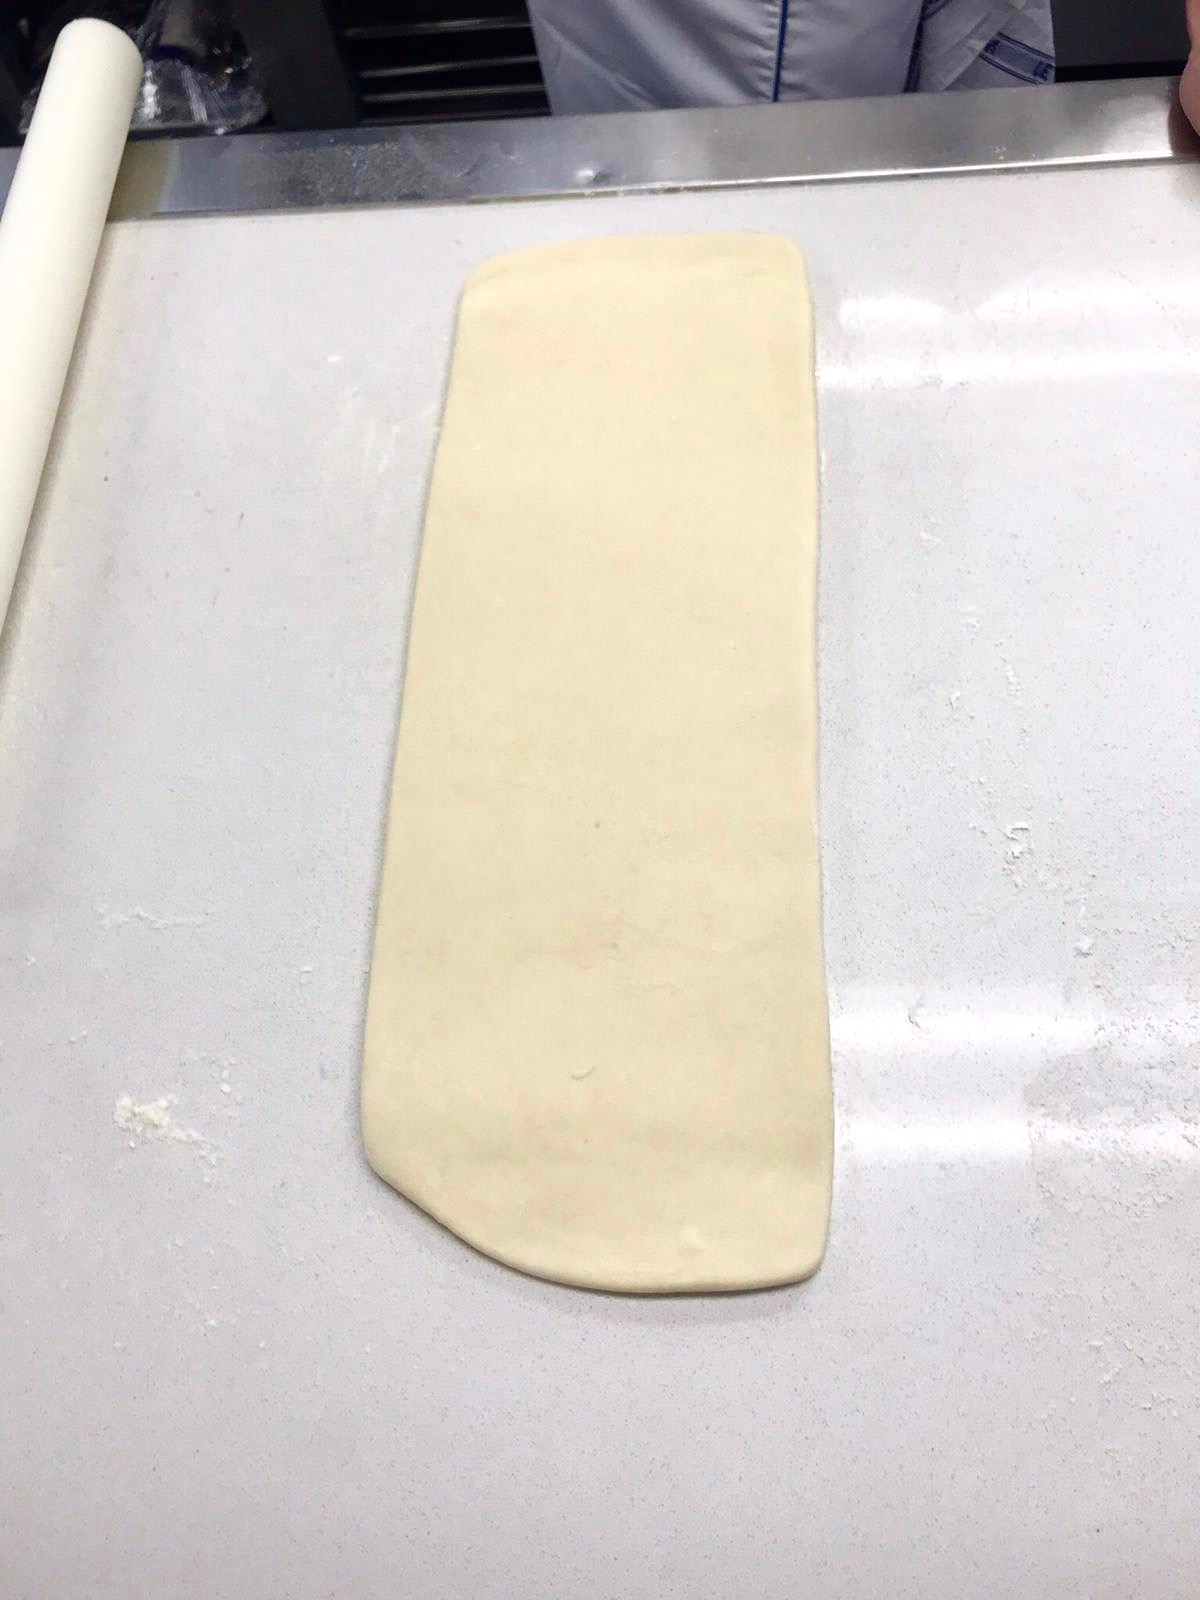 Roll after inclusion of butter